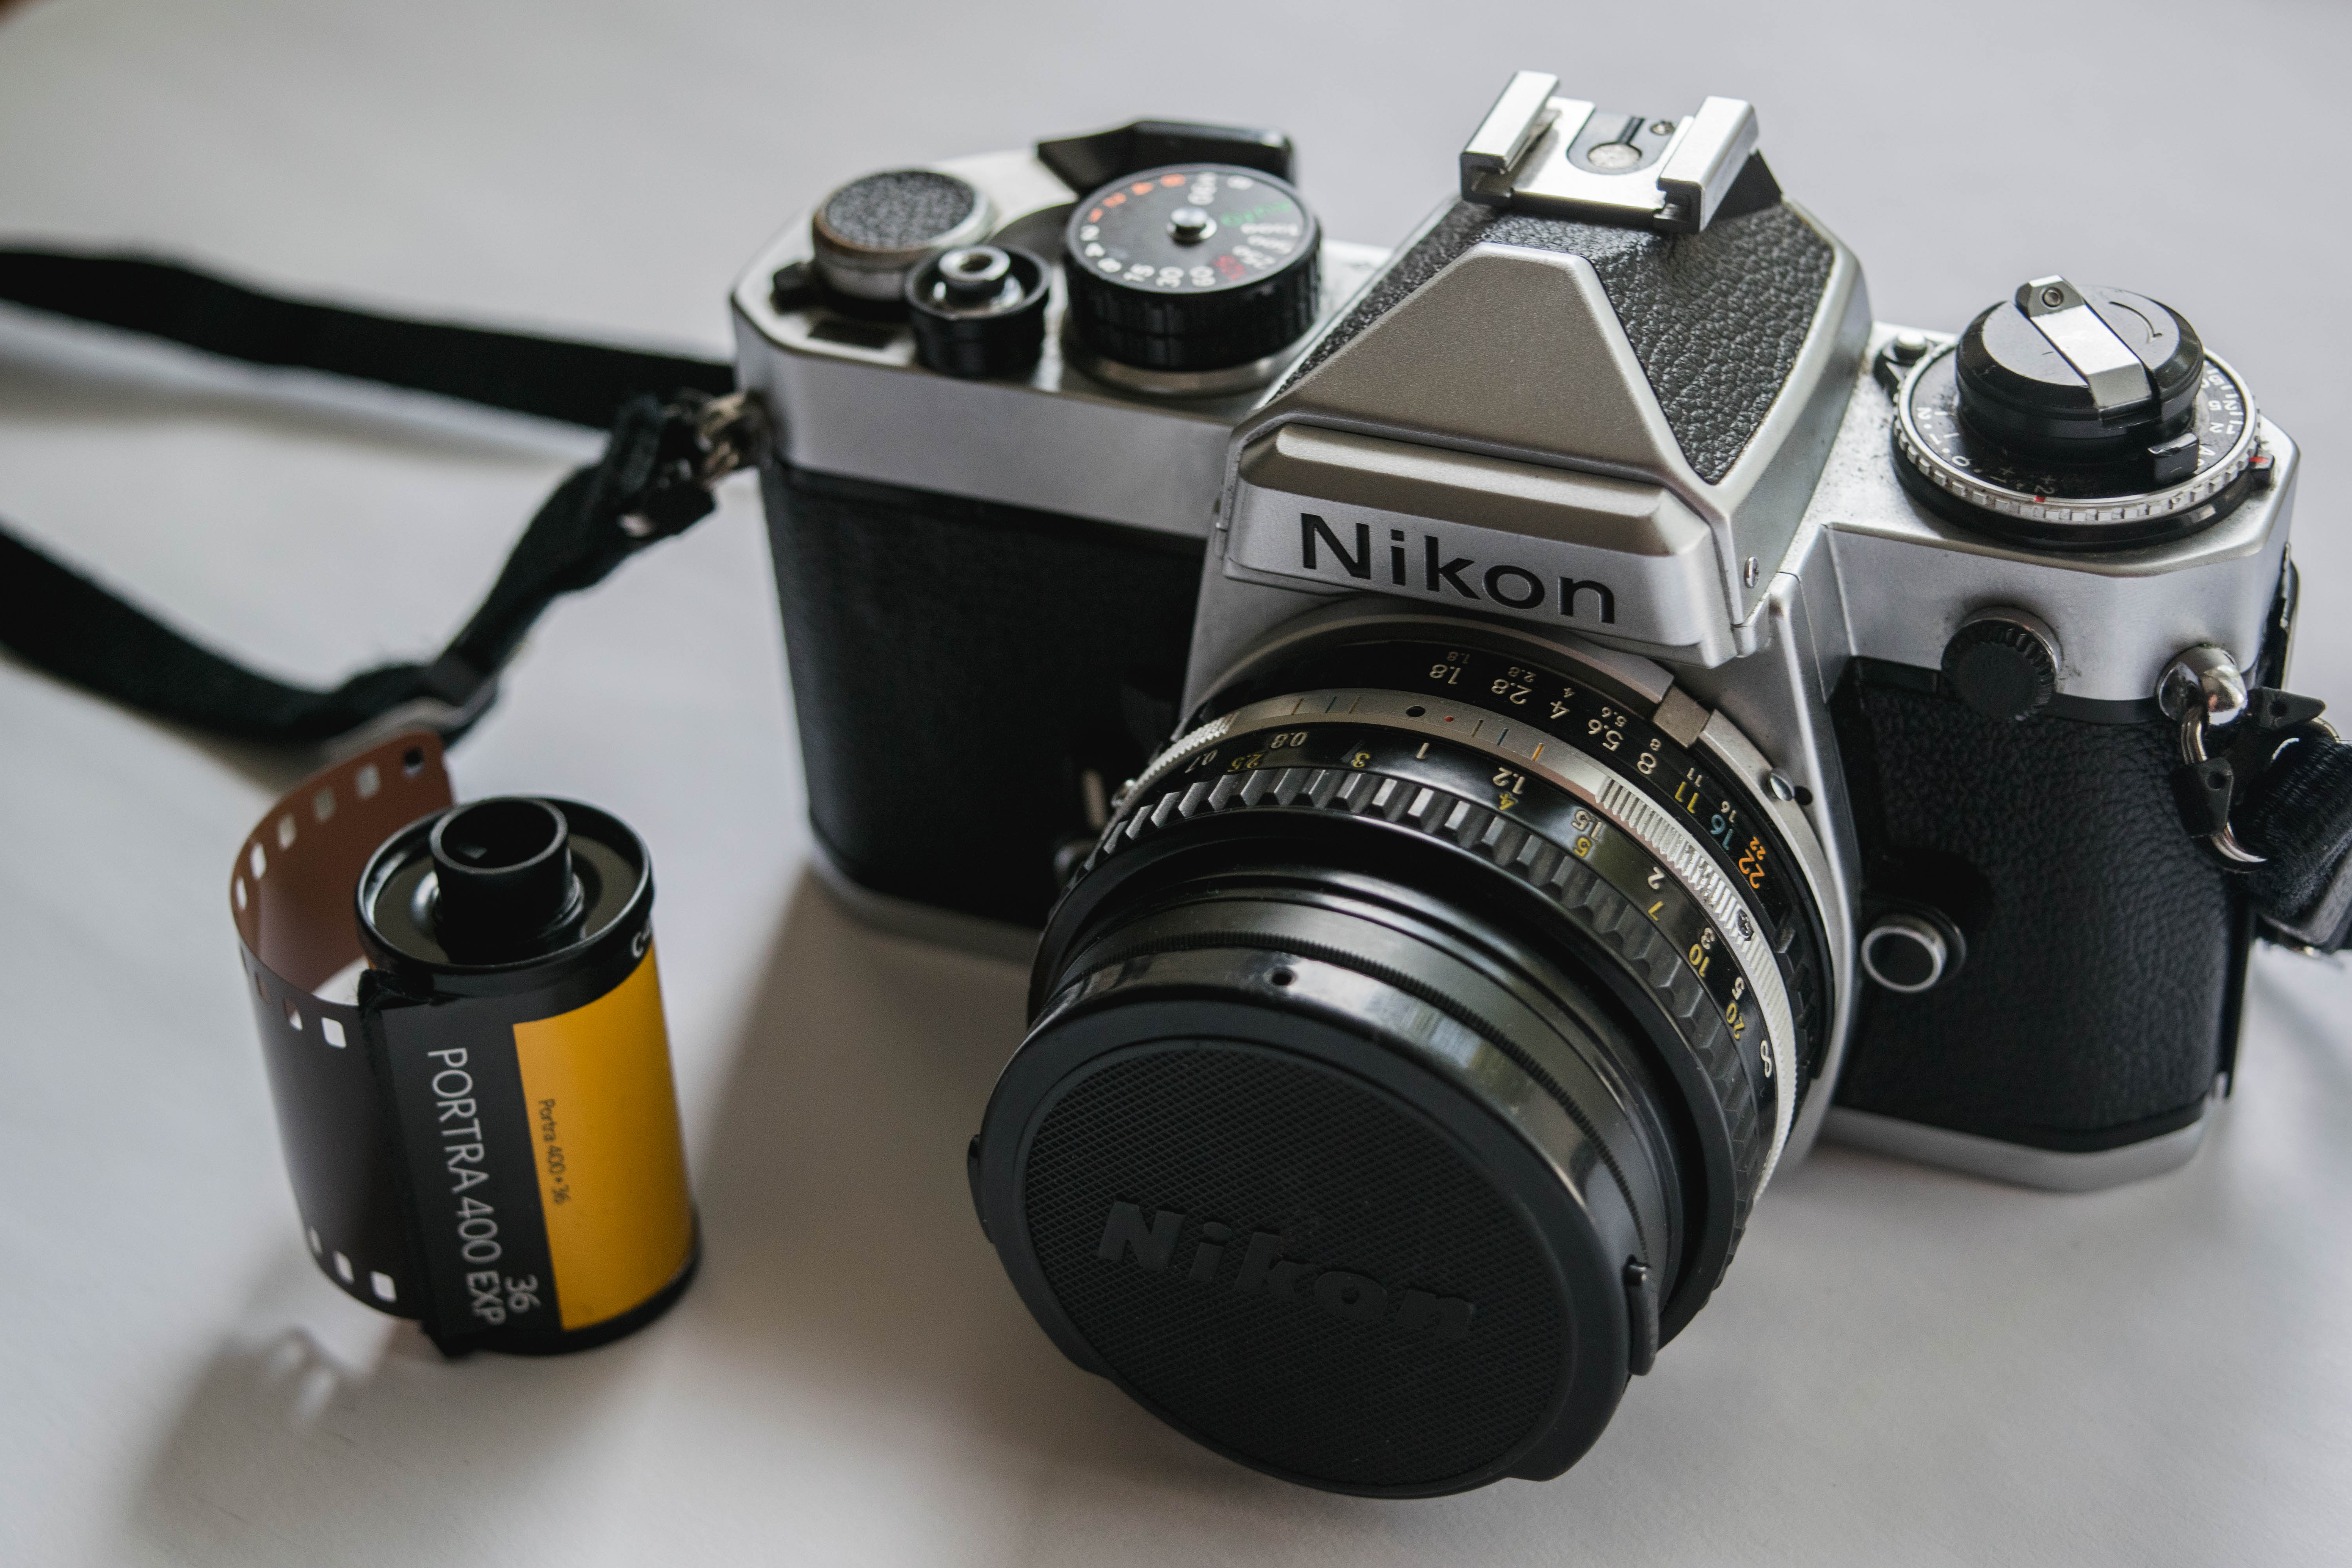 Nikon FE - How to Load Film into a 35mm Film Camera - FilterGrade Blog